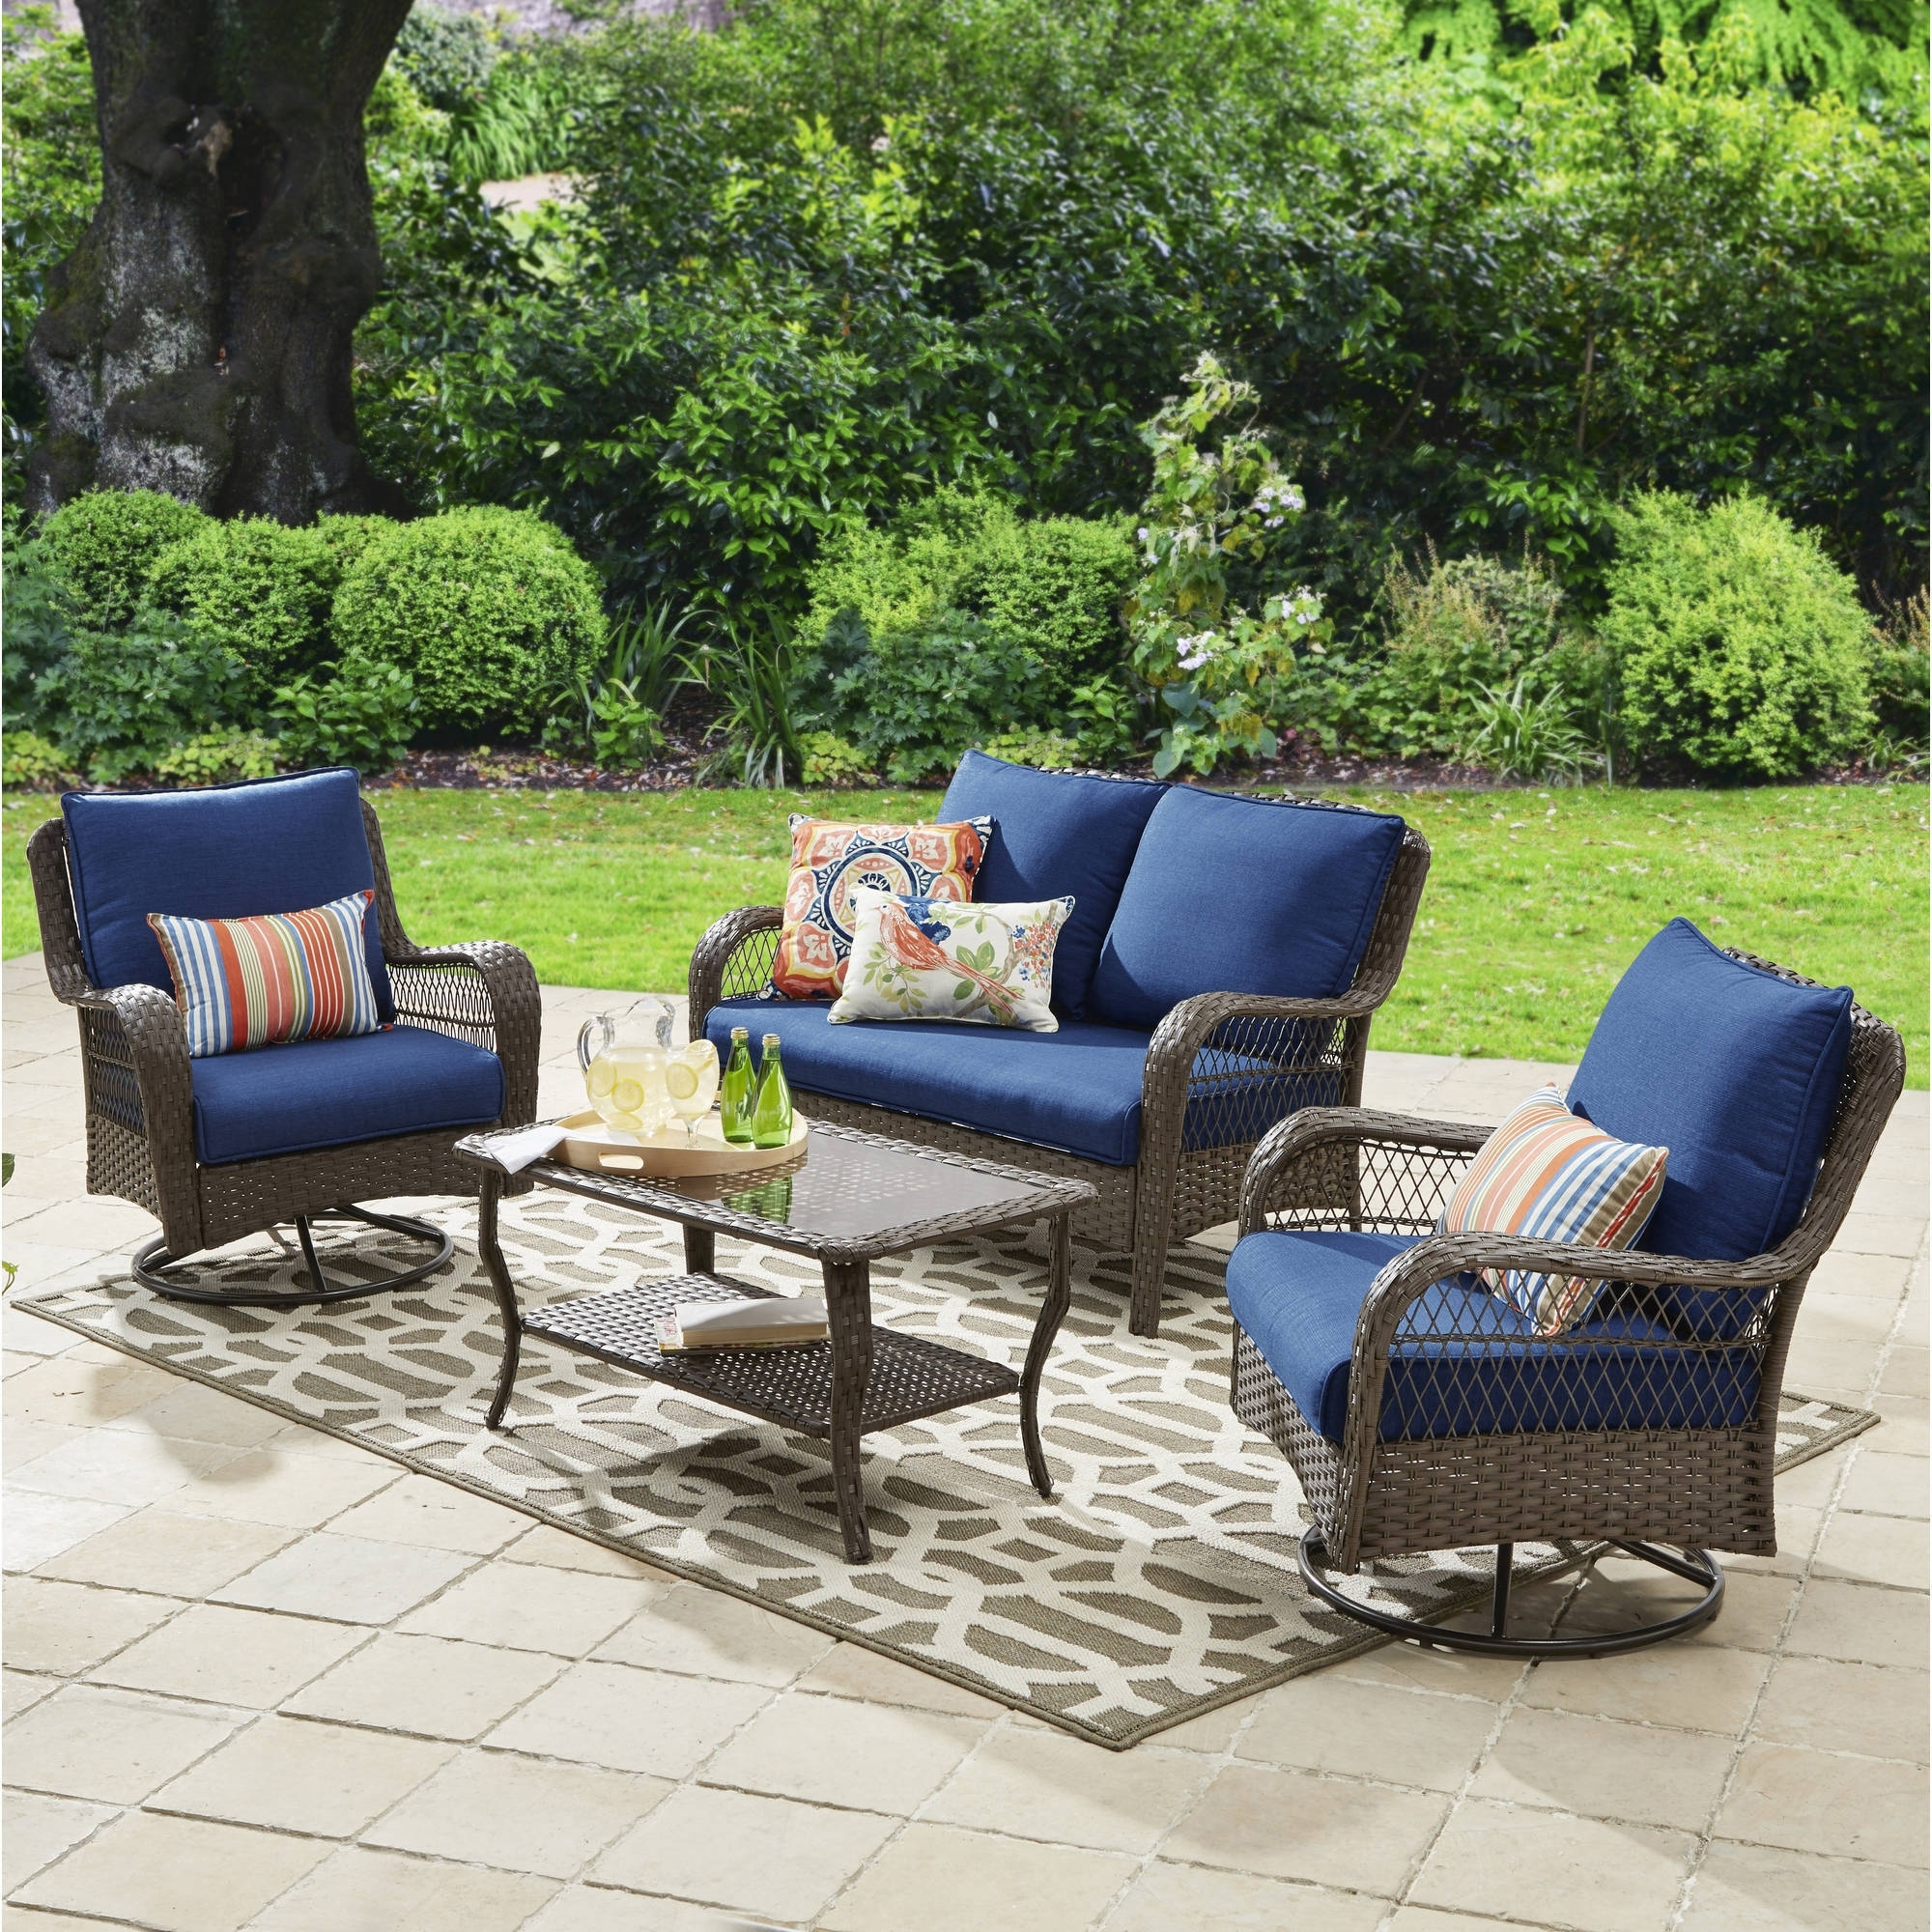 Patio Conversation Sets At Walmart For Current Better Homes And Gardens Colebrook 4 Piece Outdoor Conversation Set (View 9 of 15)